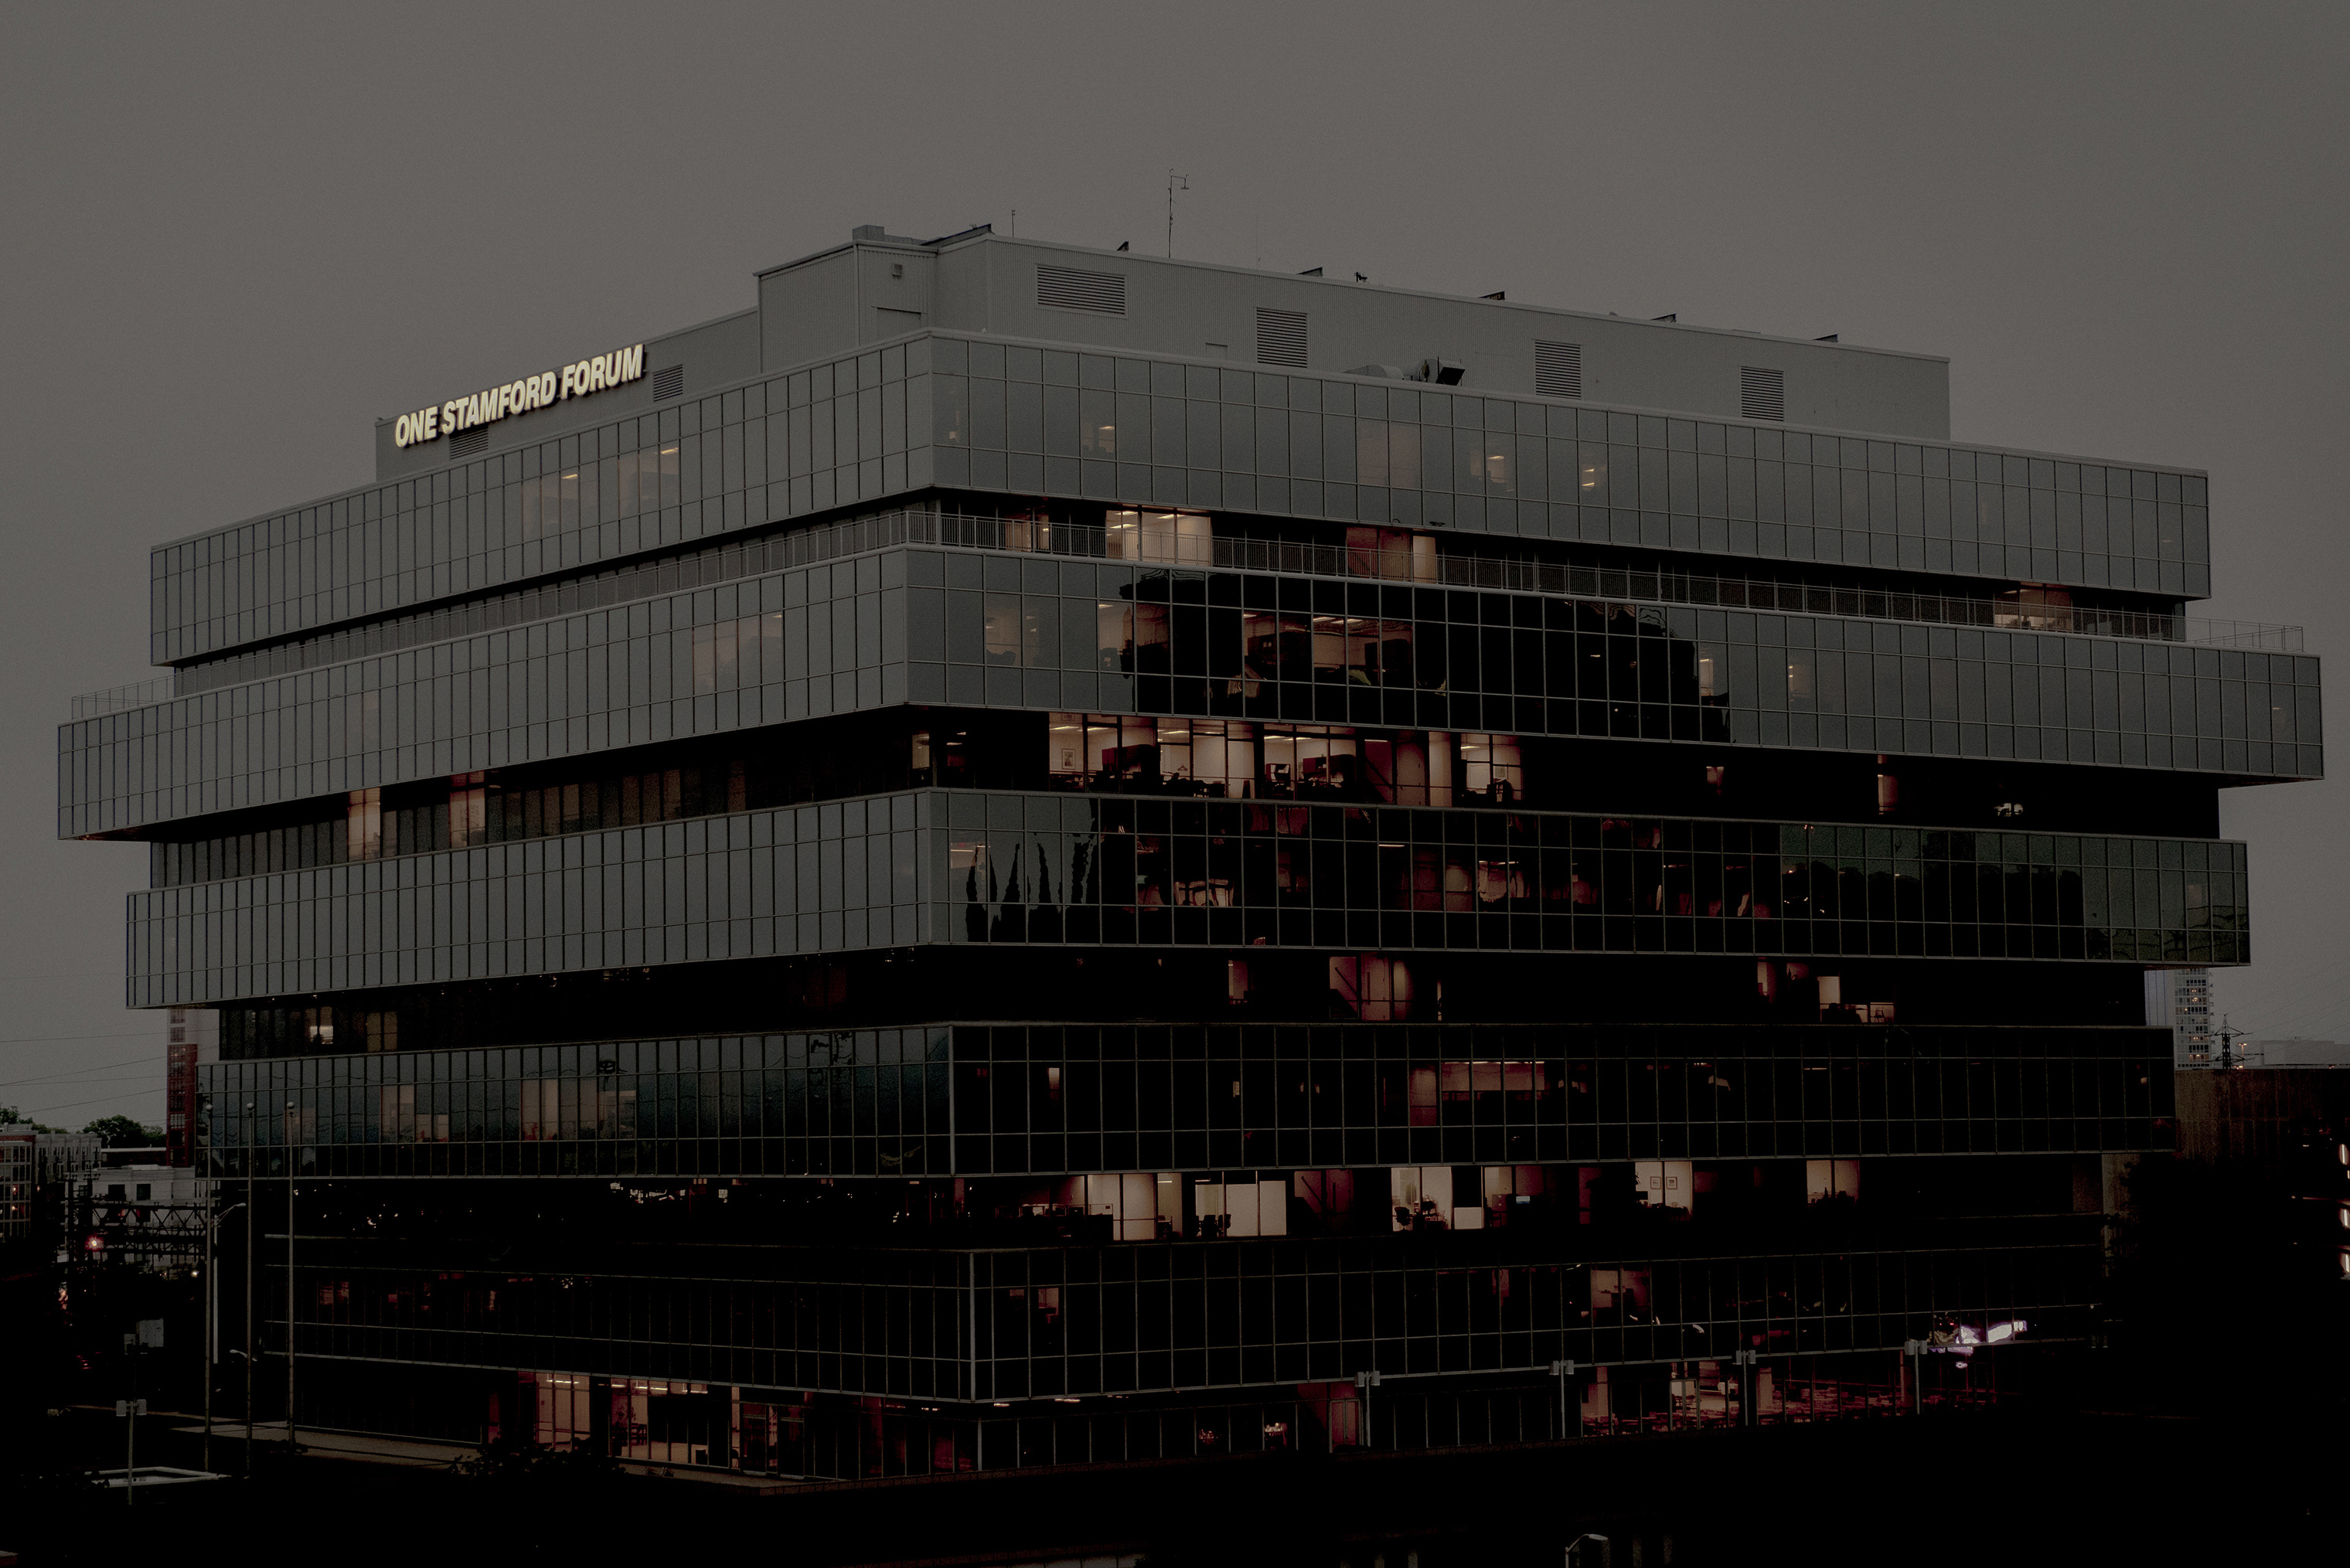 The headquarters of Purdue Pharma in Stamford, Conn., May 23, 2018. States and cities have filed lawsuits against Purdue Pharma and other opioid manufacturers and distributors.